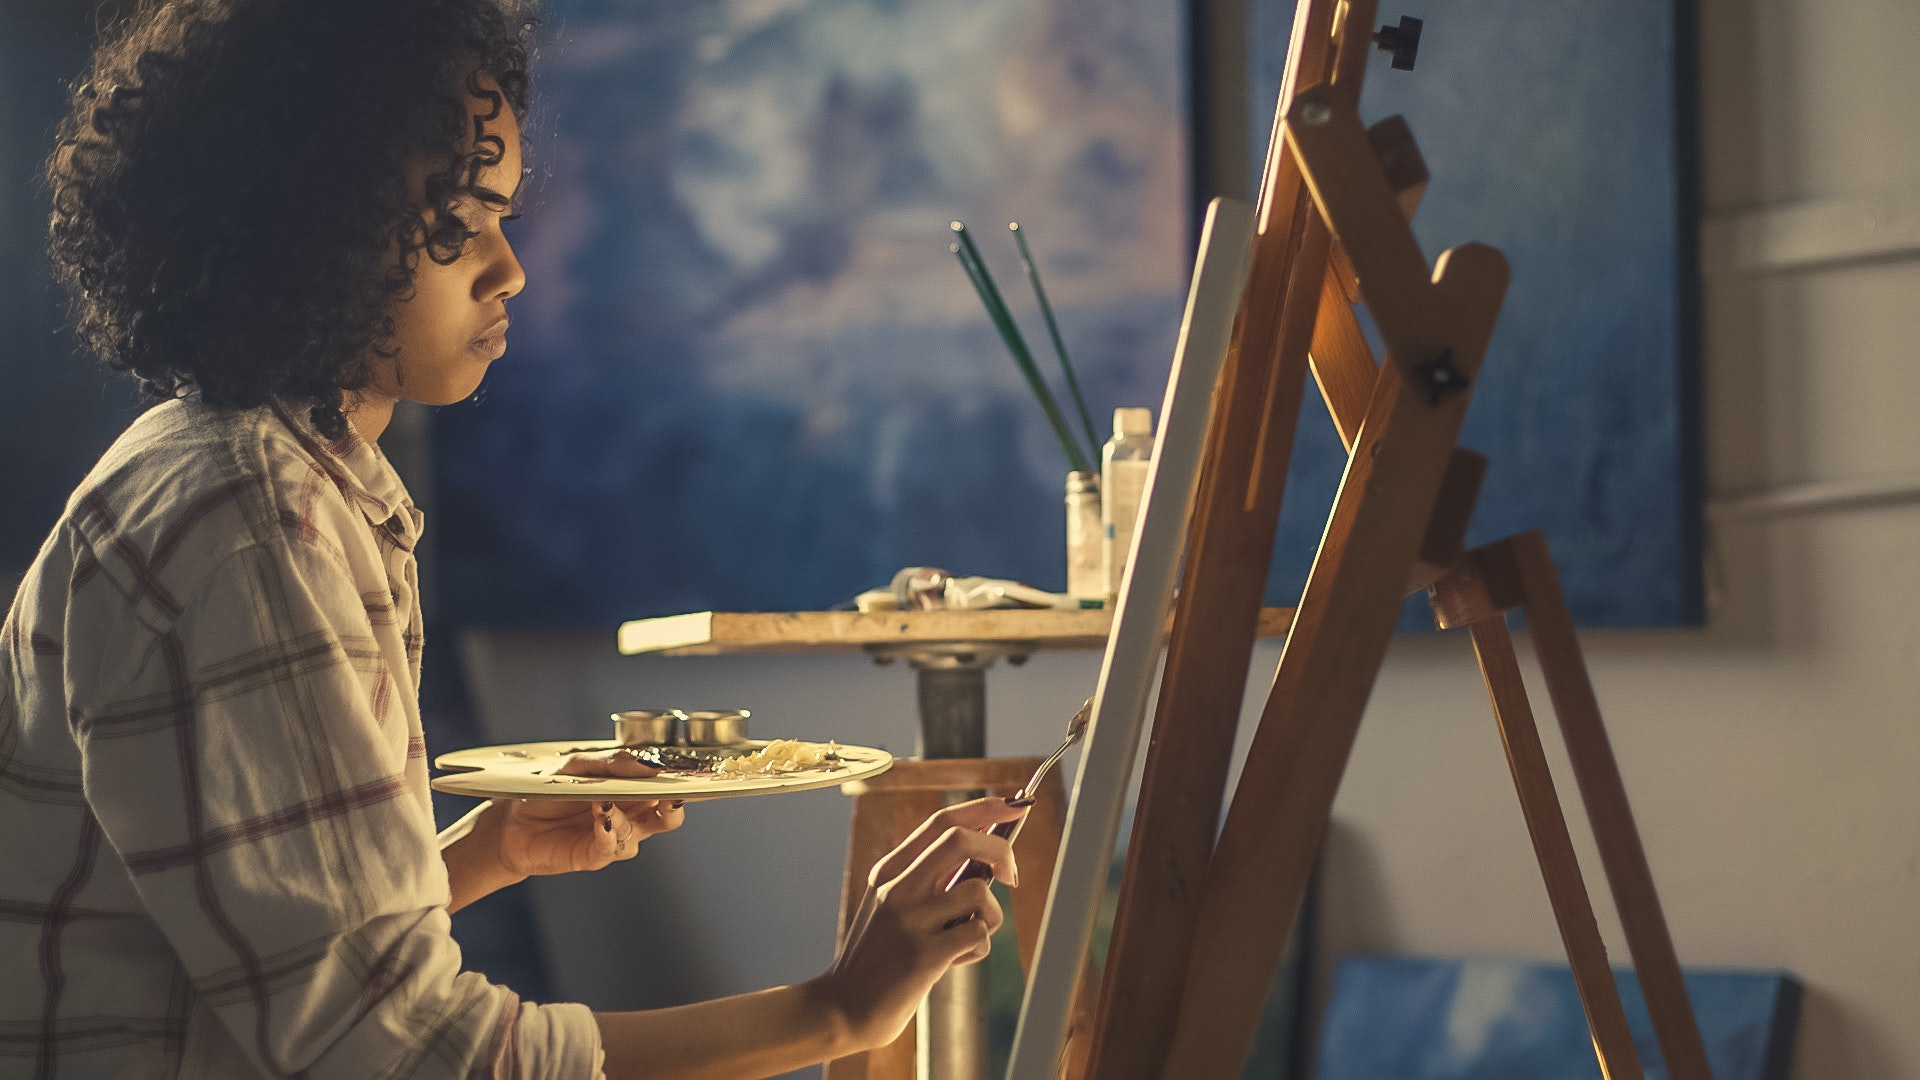 How to Manage Your Time as a Budding Artist